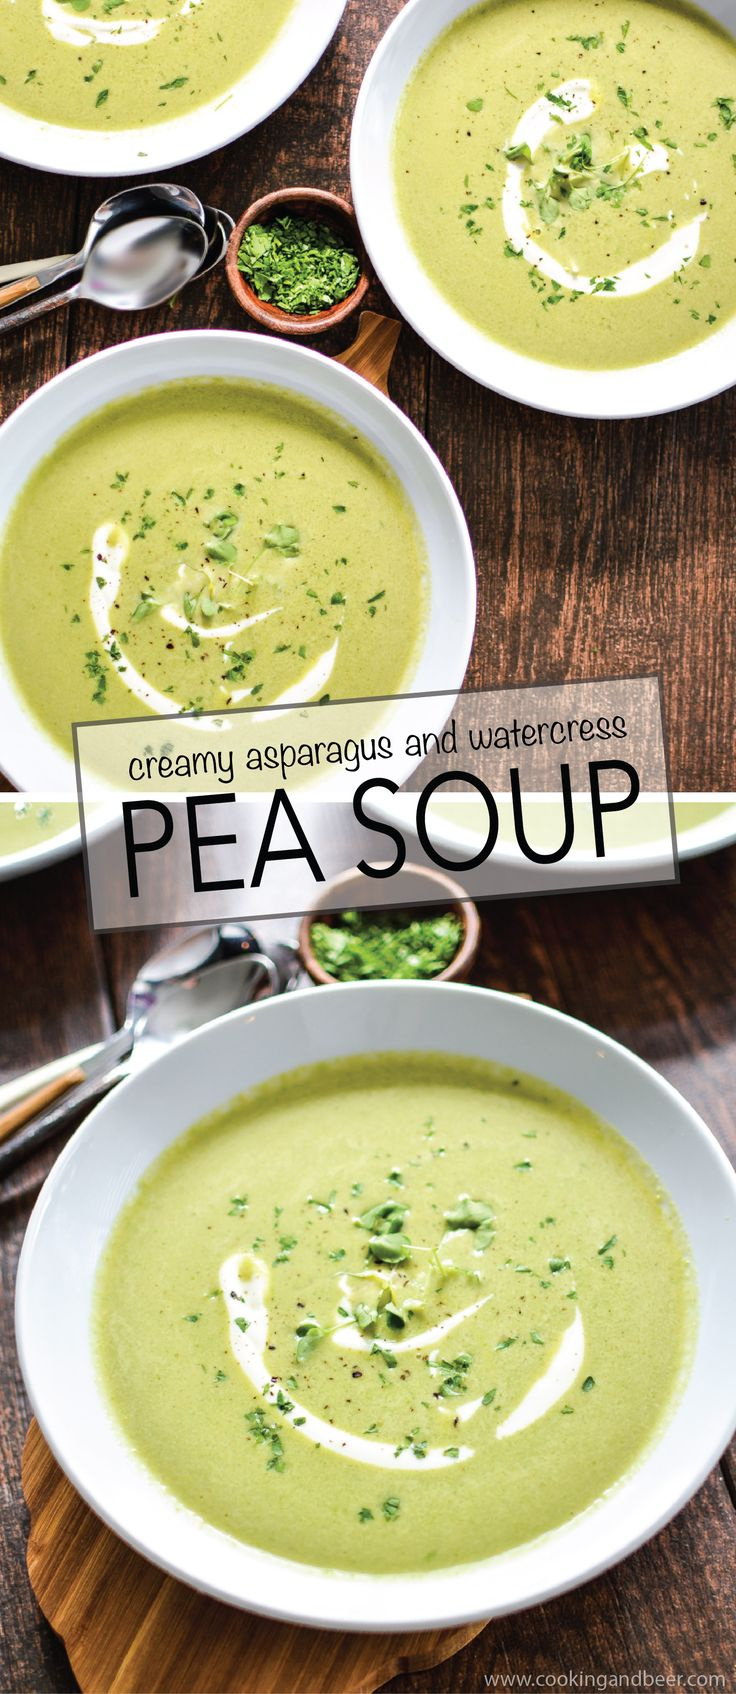 This soup highlights the vibrant flavors of spring in a simple, yet delicious recipe.